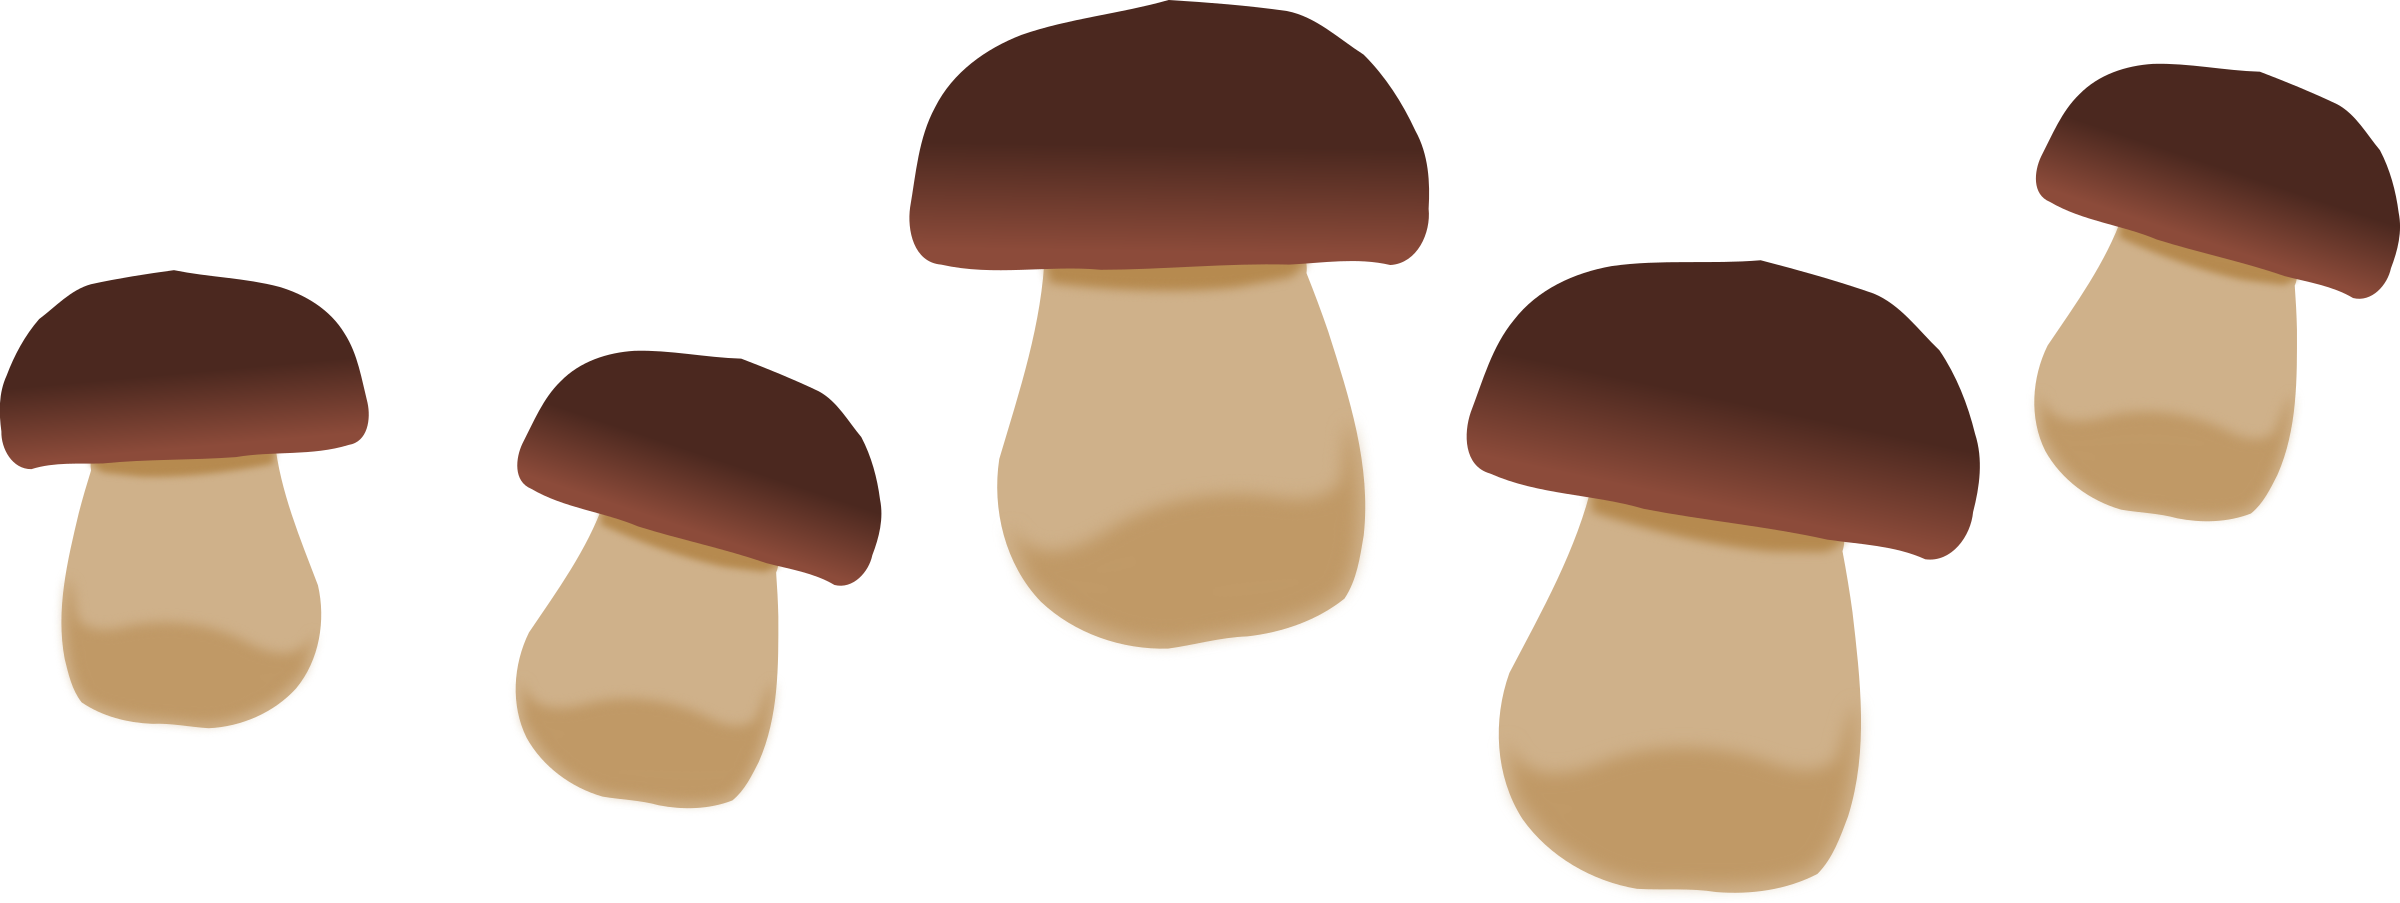 Mushrooms 3 by opk